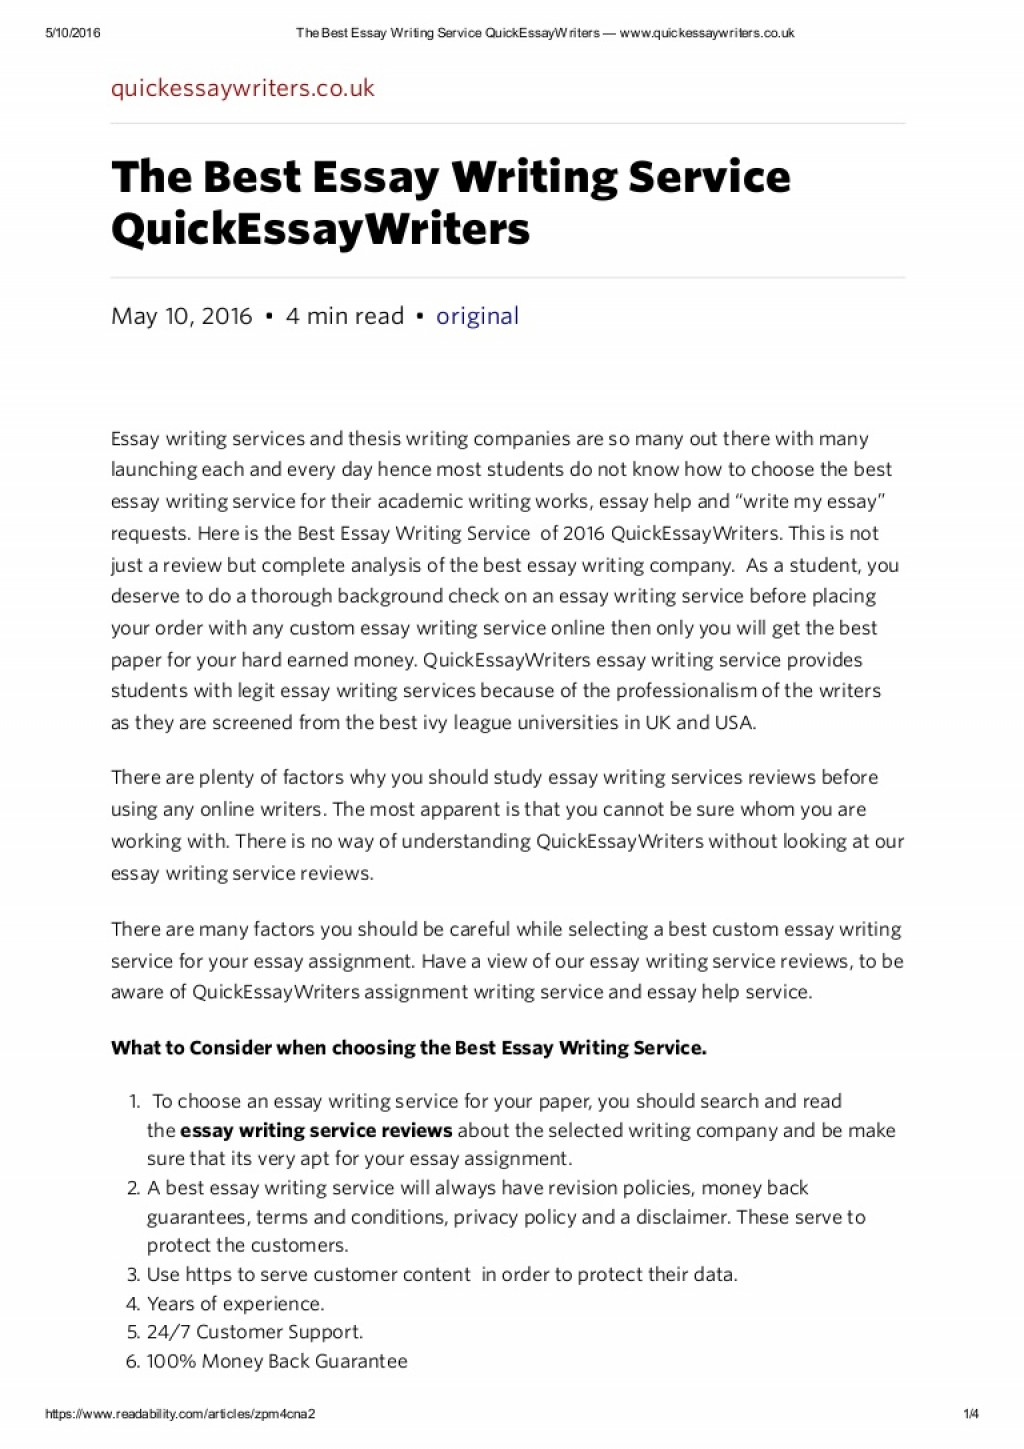 014 Essay Example Thebestessaywritingservicequickessaywriterswww Thumbnail Best Awful Writing Program Books Service In Us Large